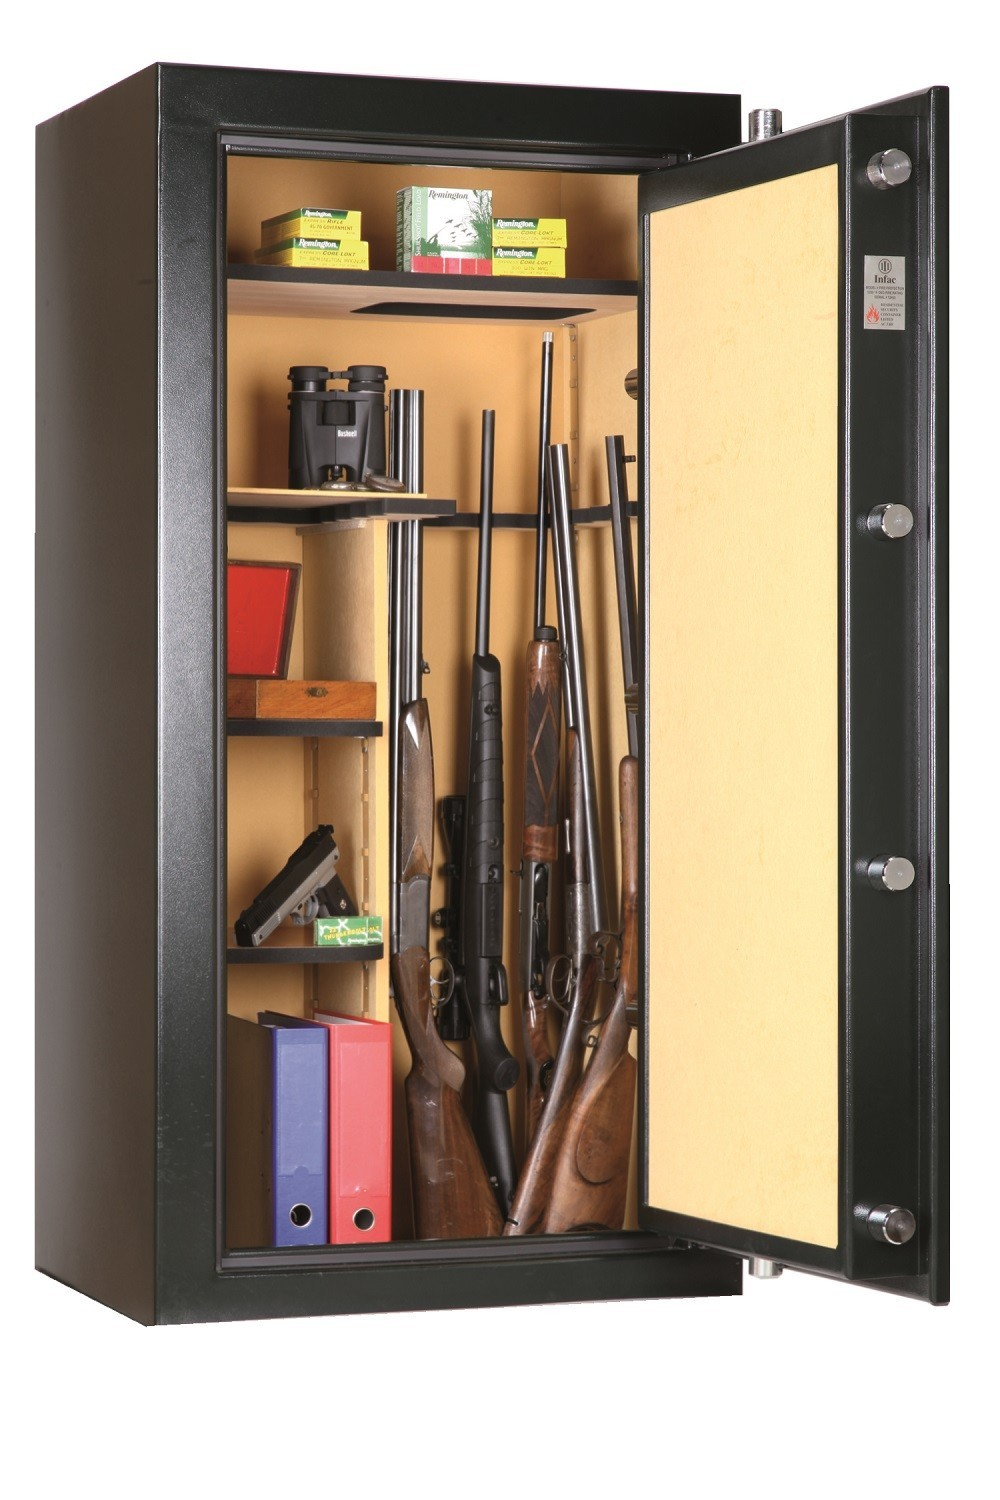 armoire forte fusil pas cher elite coffres forts et armoires fortes pas chers pour armes con. Black Bedroom Furniture Sets. Home Design Ideas